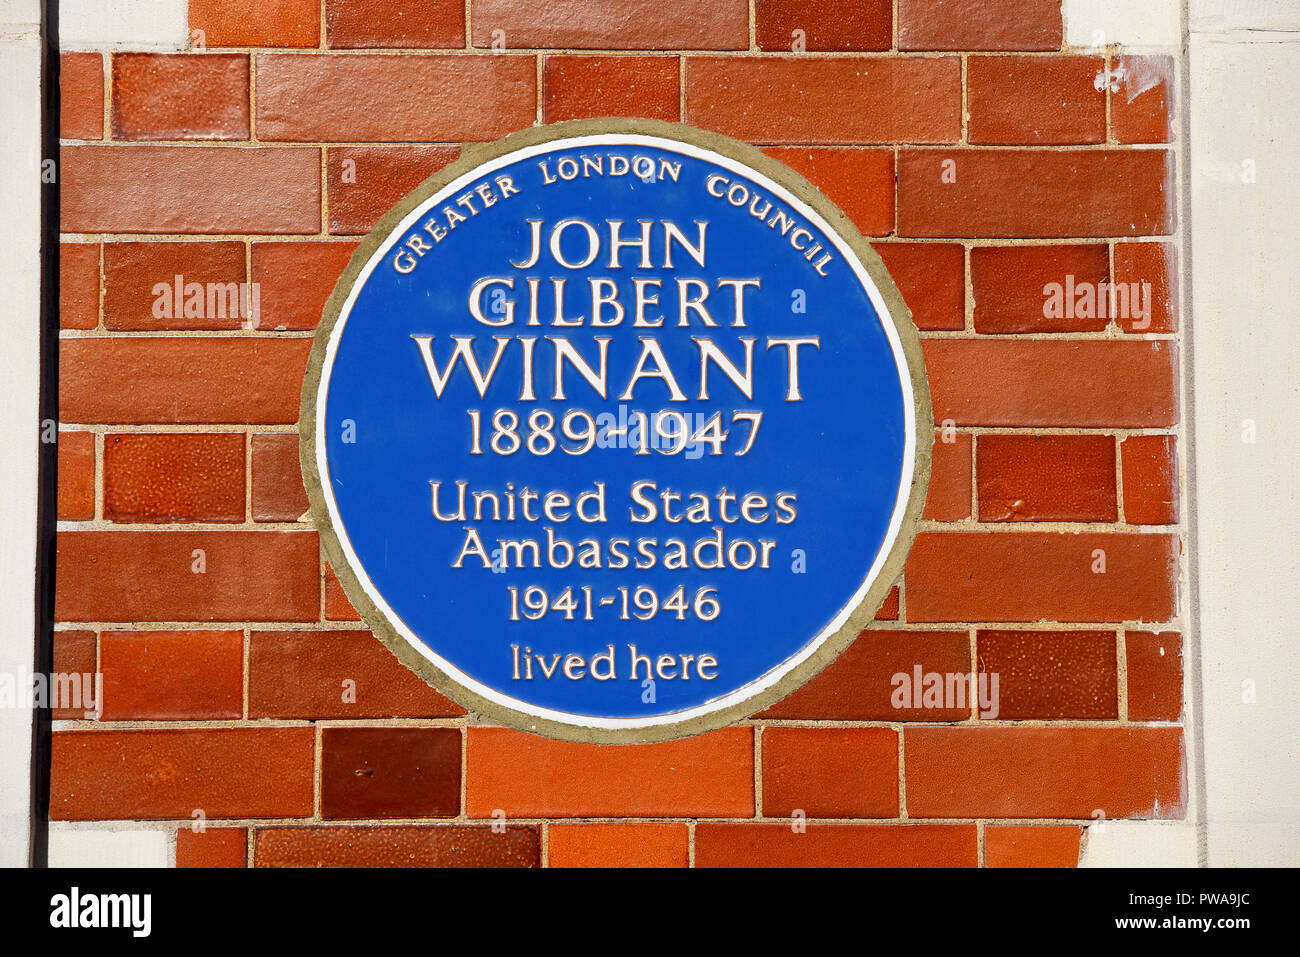 John Gilbert Winant blue plaque. US Ambassador to the UK, Aldford St, Mayfair, City of Westminster, London, England, UK. Wall. Greater London Council - Stock Image